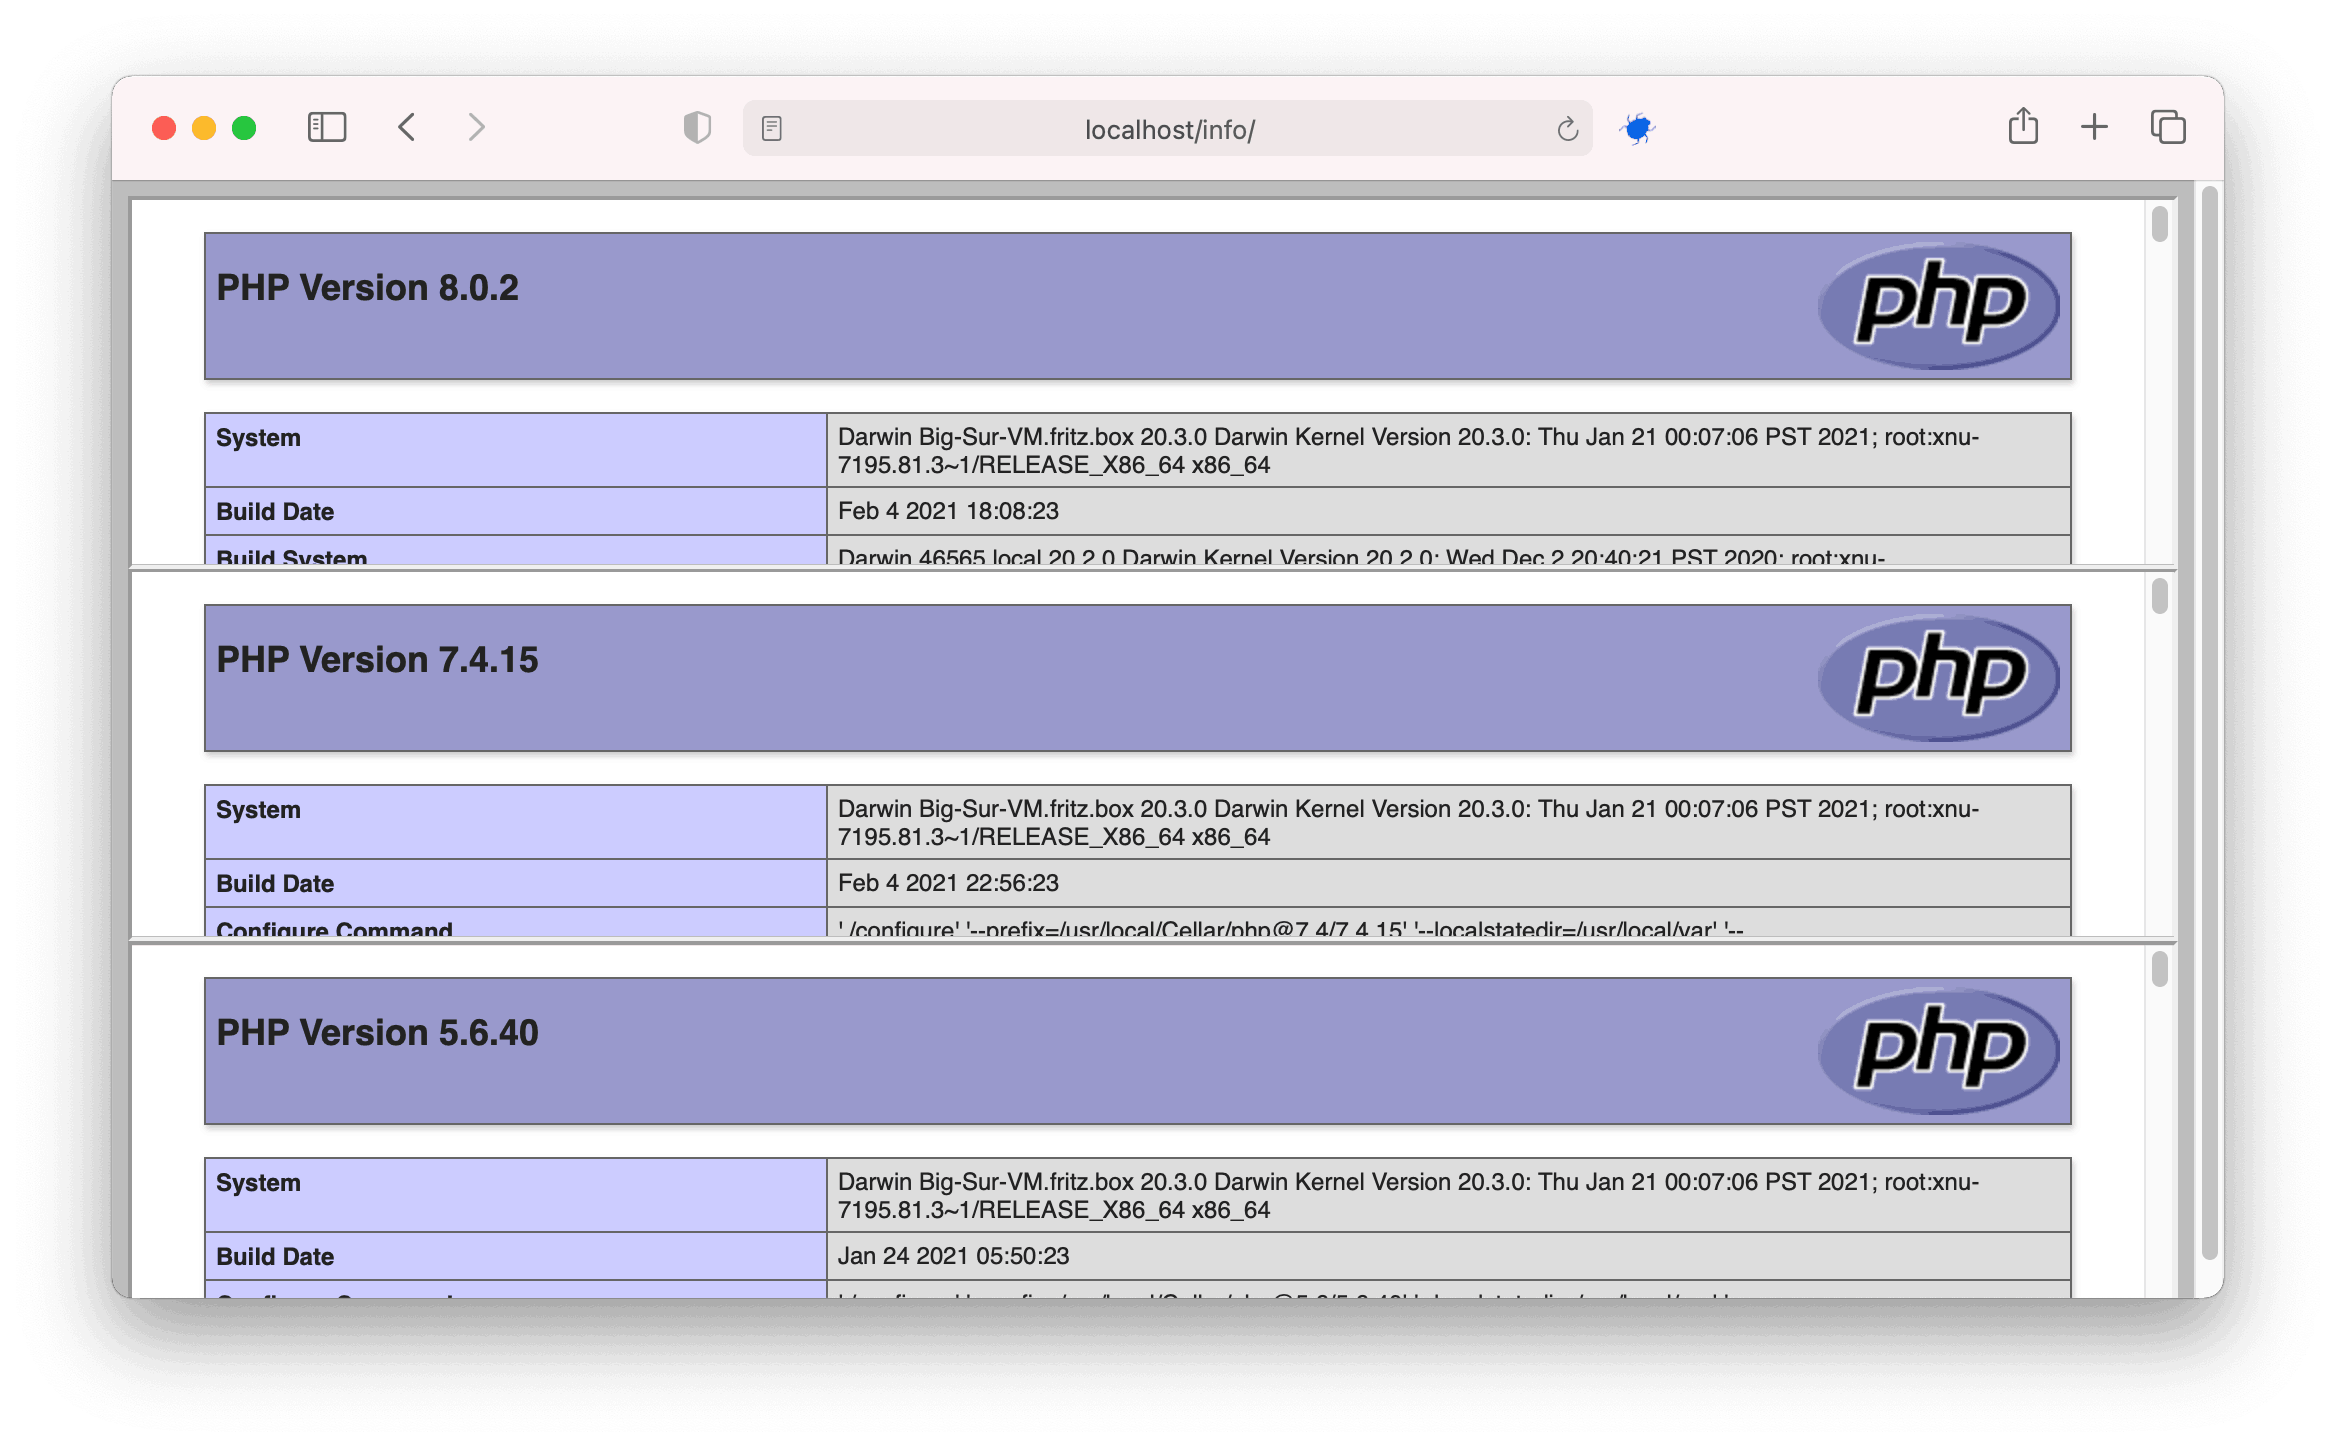 macos-php-versions.png